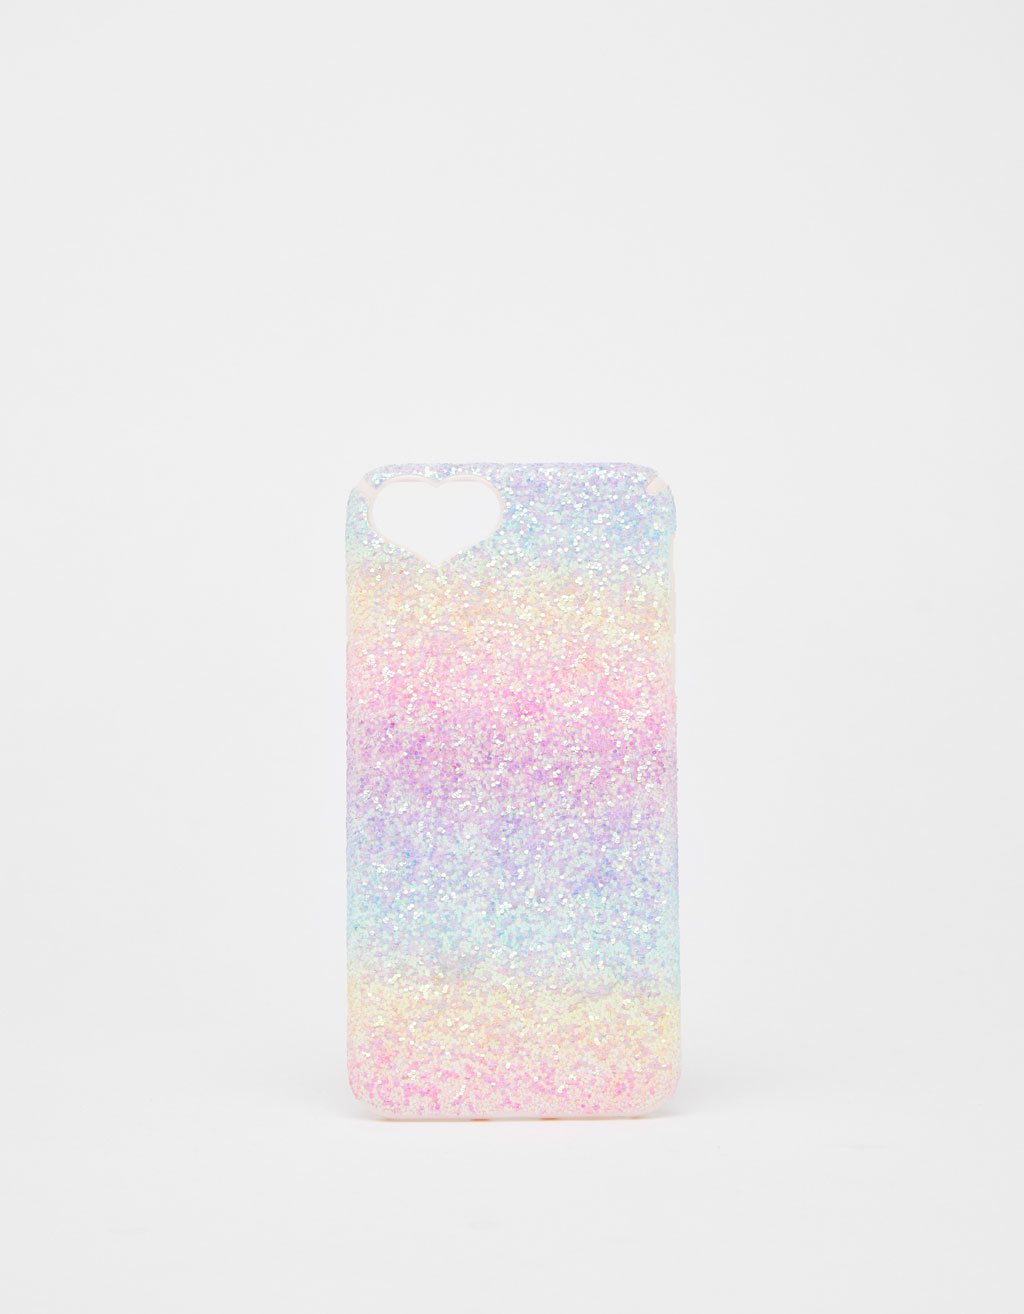 Coque à paillettes cœur iPhone 6 plus/7 plus/8 plus